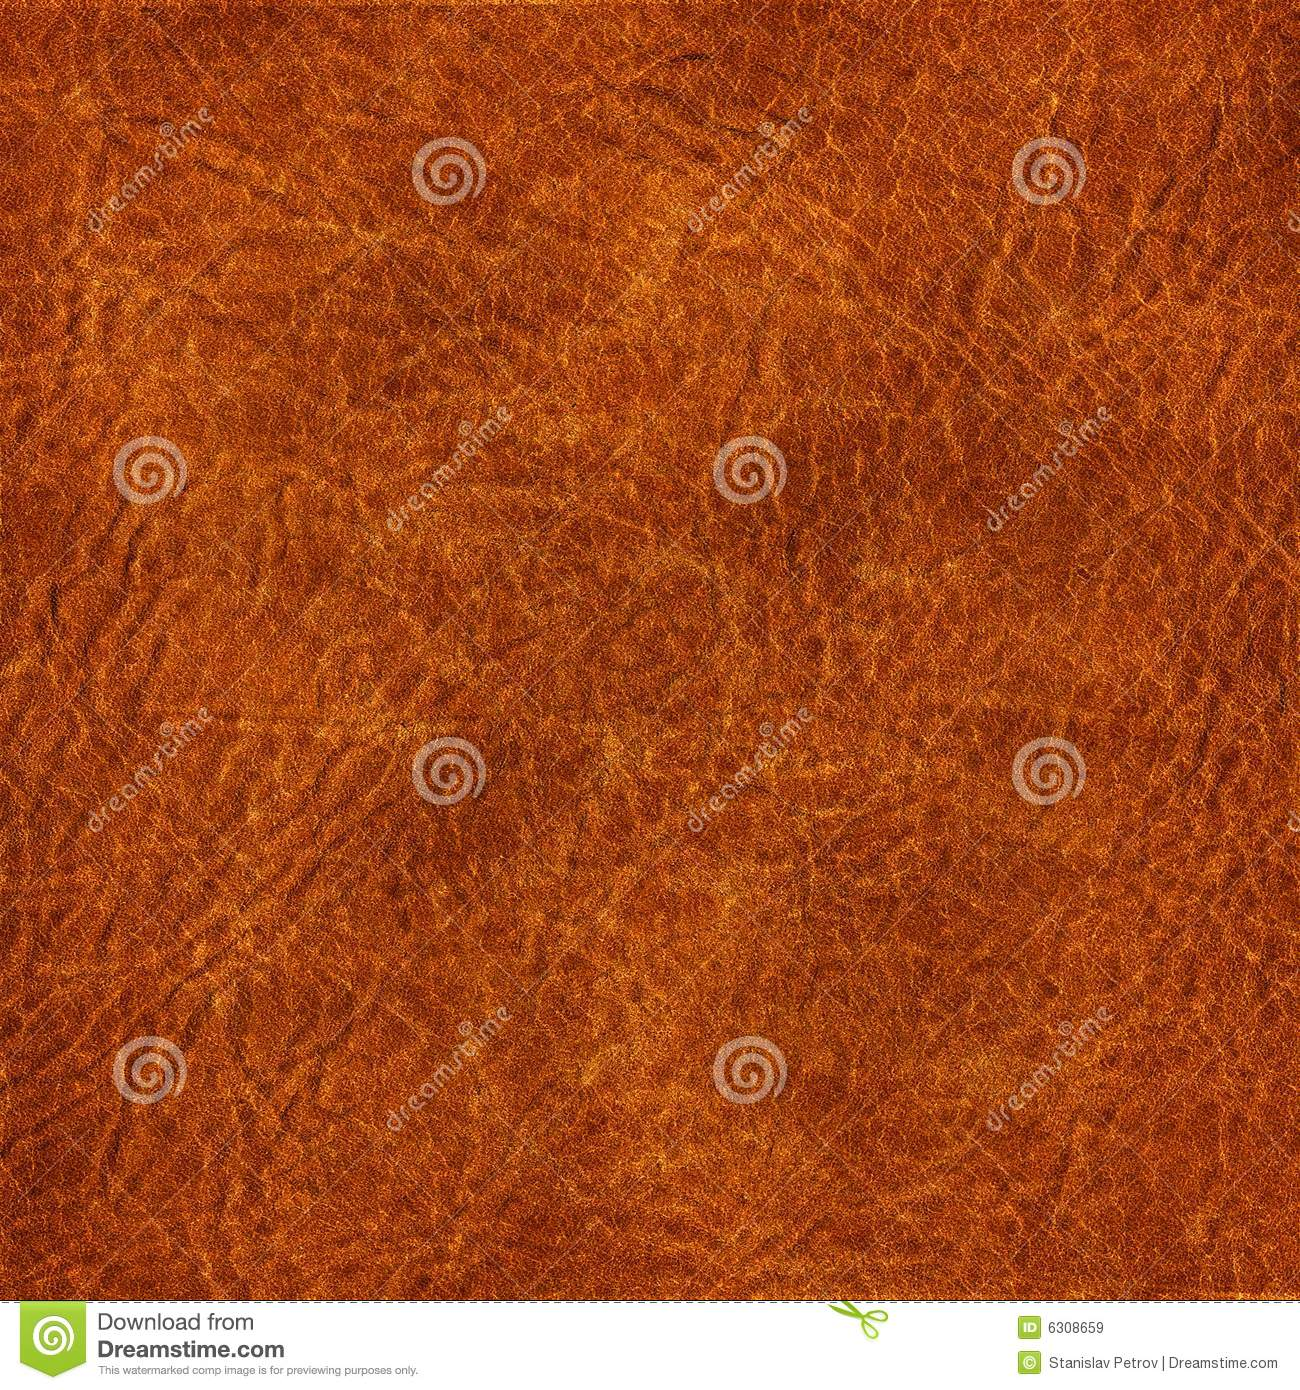 Creased Book Cover Texture ~ Aged book cover texture royalty free stock images image